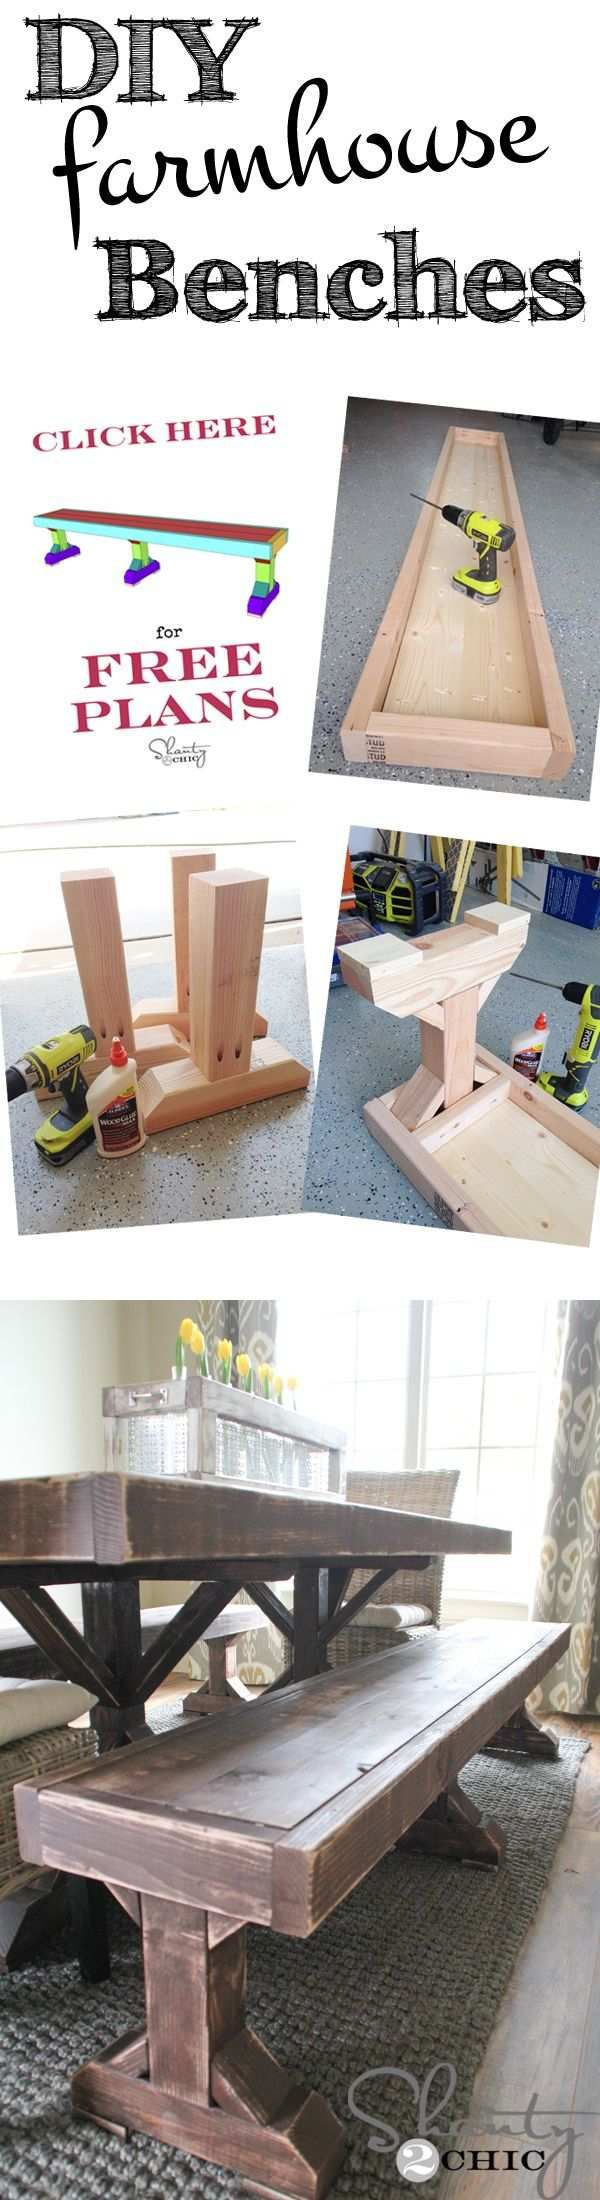 508 Best Wood Projects Galore Images On Pinterest Backyard Sheds Outlet 4 Prong For Wiring A Stove Http Www Hammerzone Com Beside Dining Tables Bench We Will Also Get Diy Kitchen Table And Room Ideas